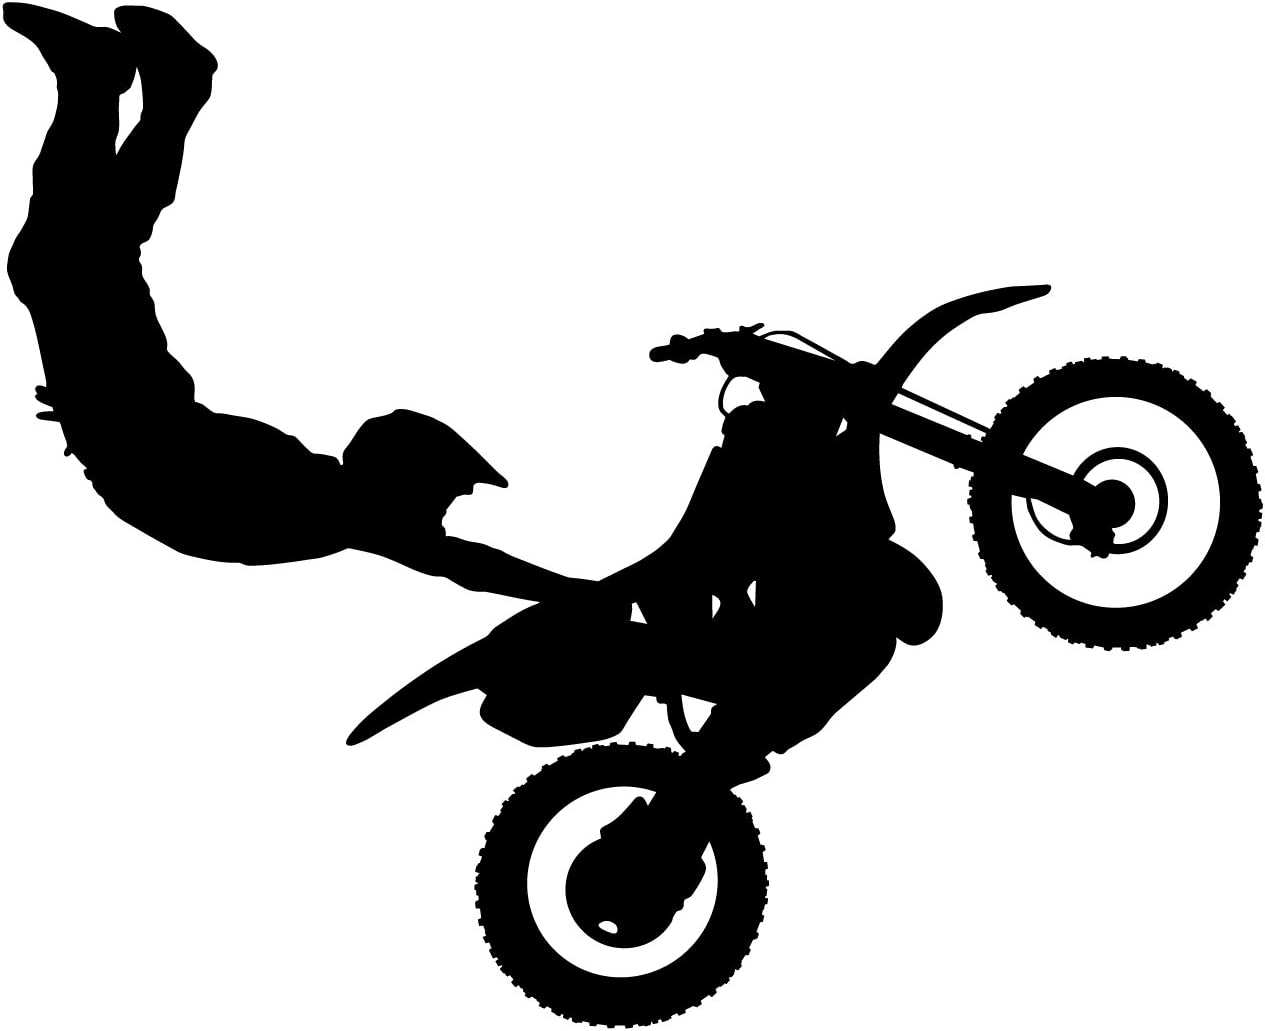 Motocross Wall Decal Sticker 9 - Decal Stickers and Mural for Kids Boys Girls Room and Bedroom. Dirt Bike Wall Art for Home Decor and Decoration Ð Extreme Sports Motocross Bike Silhouette Mural